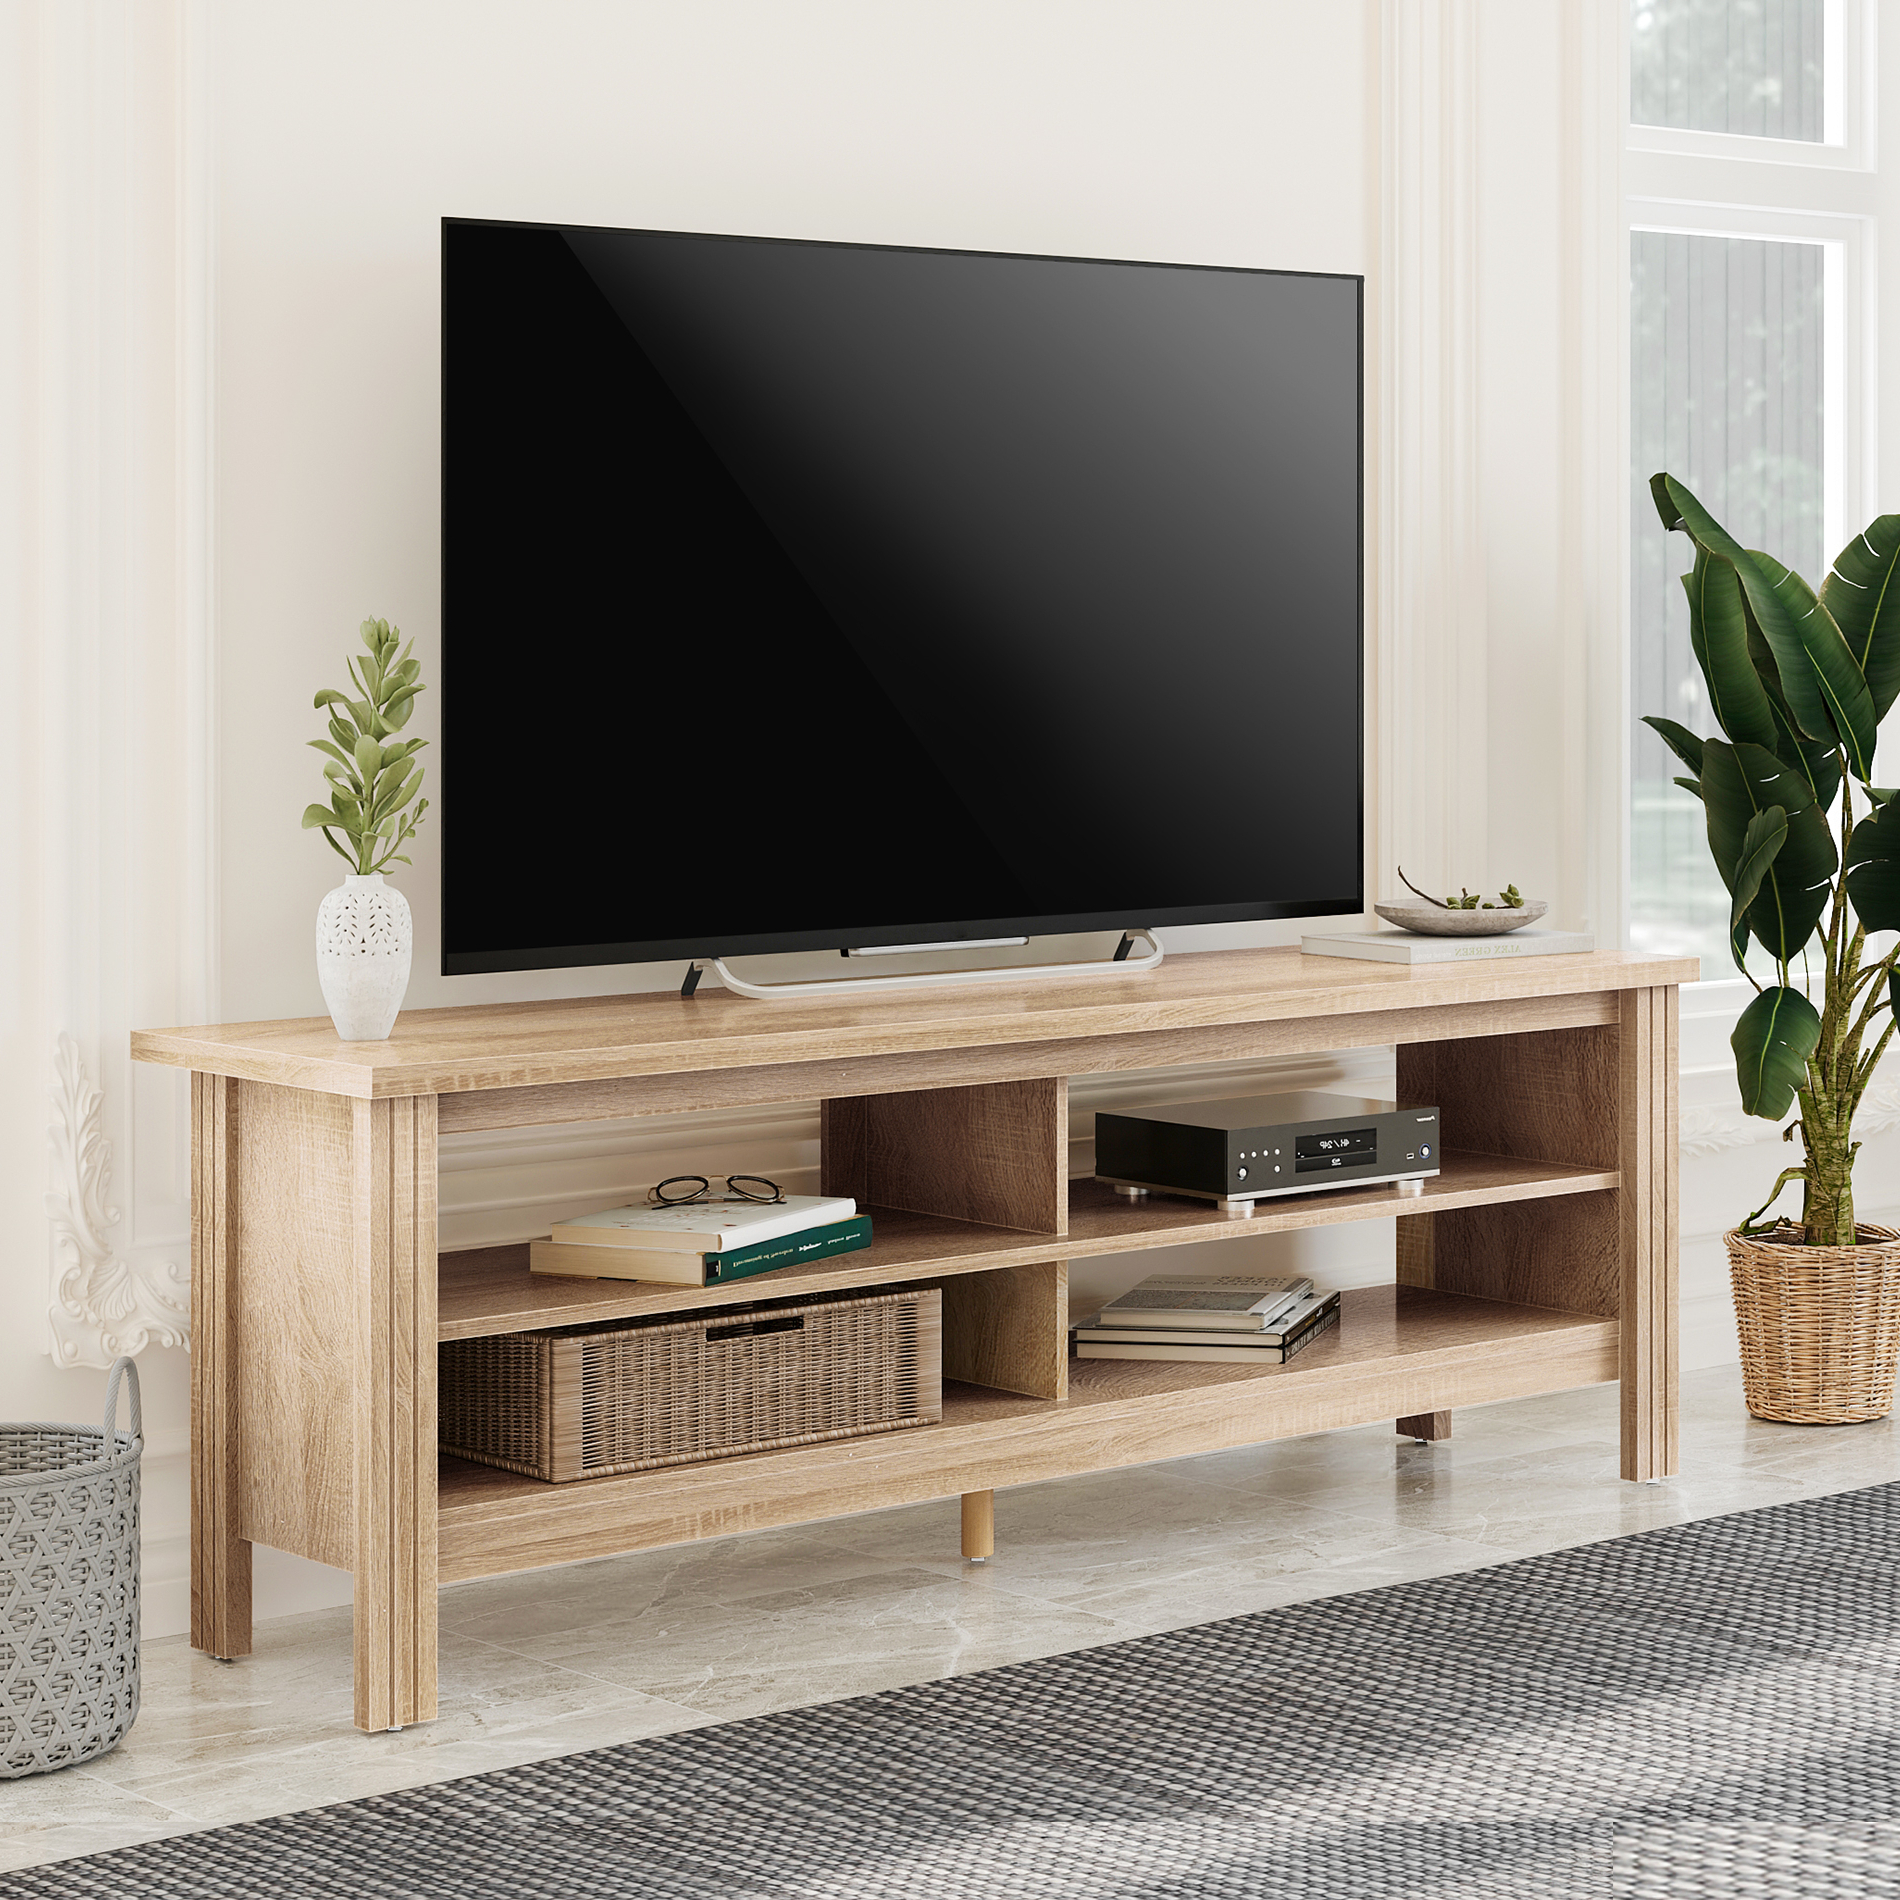 """Well Known Wampat Farmhouse Tv Stand For 65 Inch Flat Screen, Living Inside Olinda Tv Stands For Tvs Up To 65"""" (View 3 of 25)"""